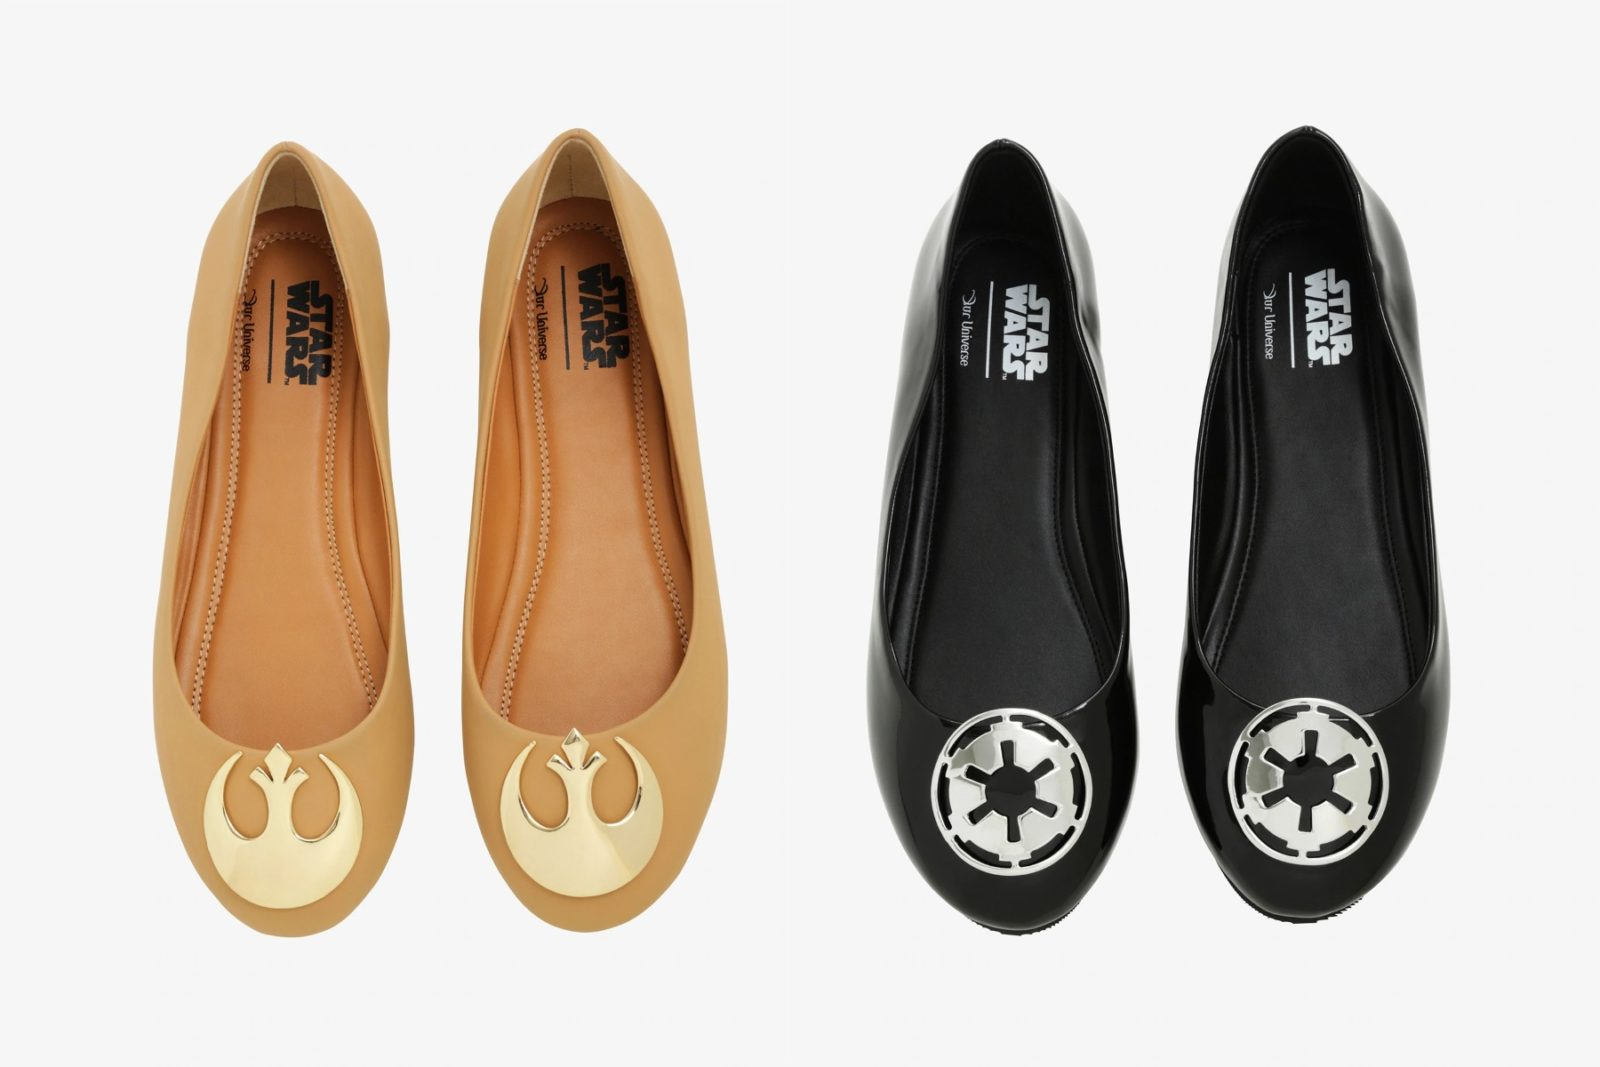 Her Universe Star Wars Flats Now Online!